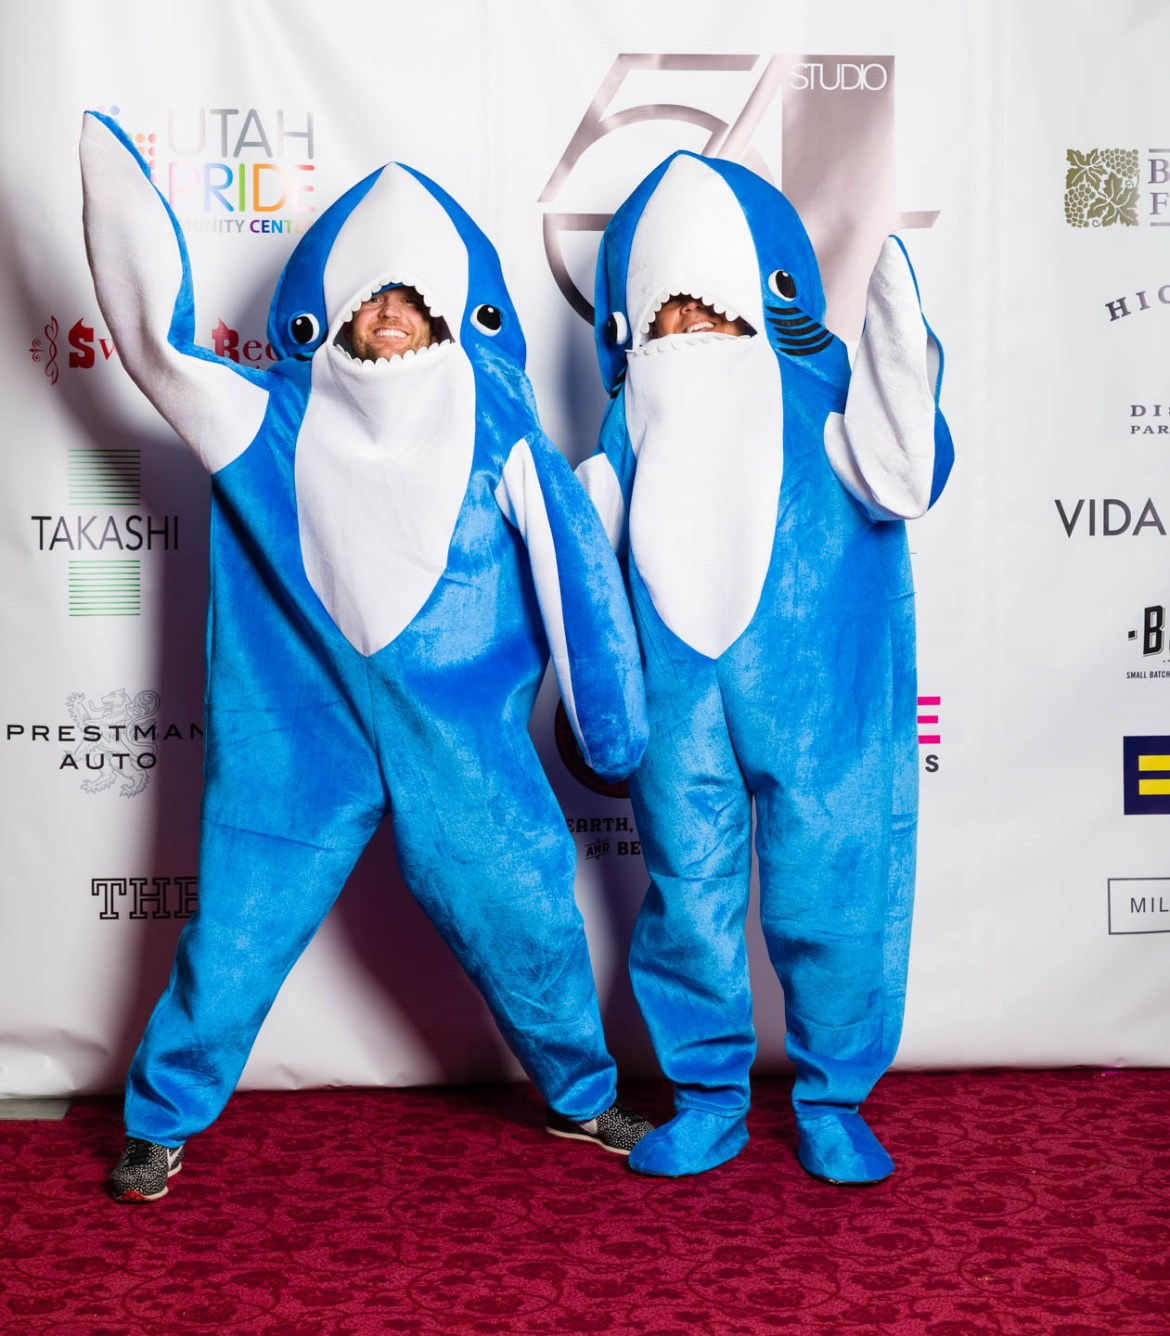 From the Superbowl it is Left Shark and Right Shark